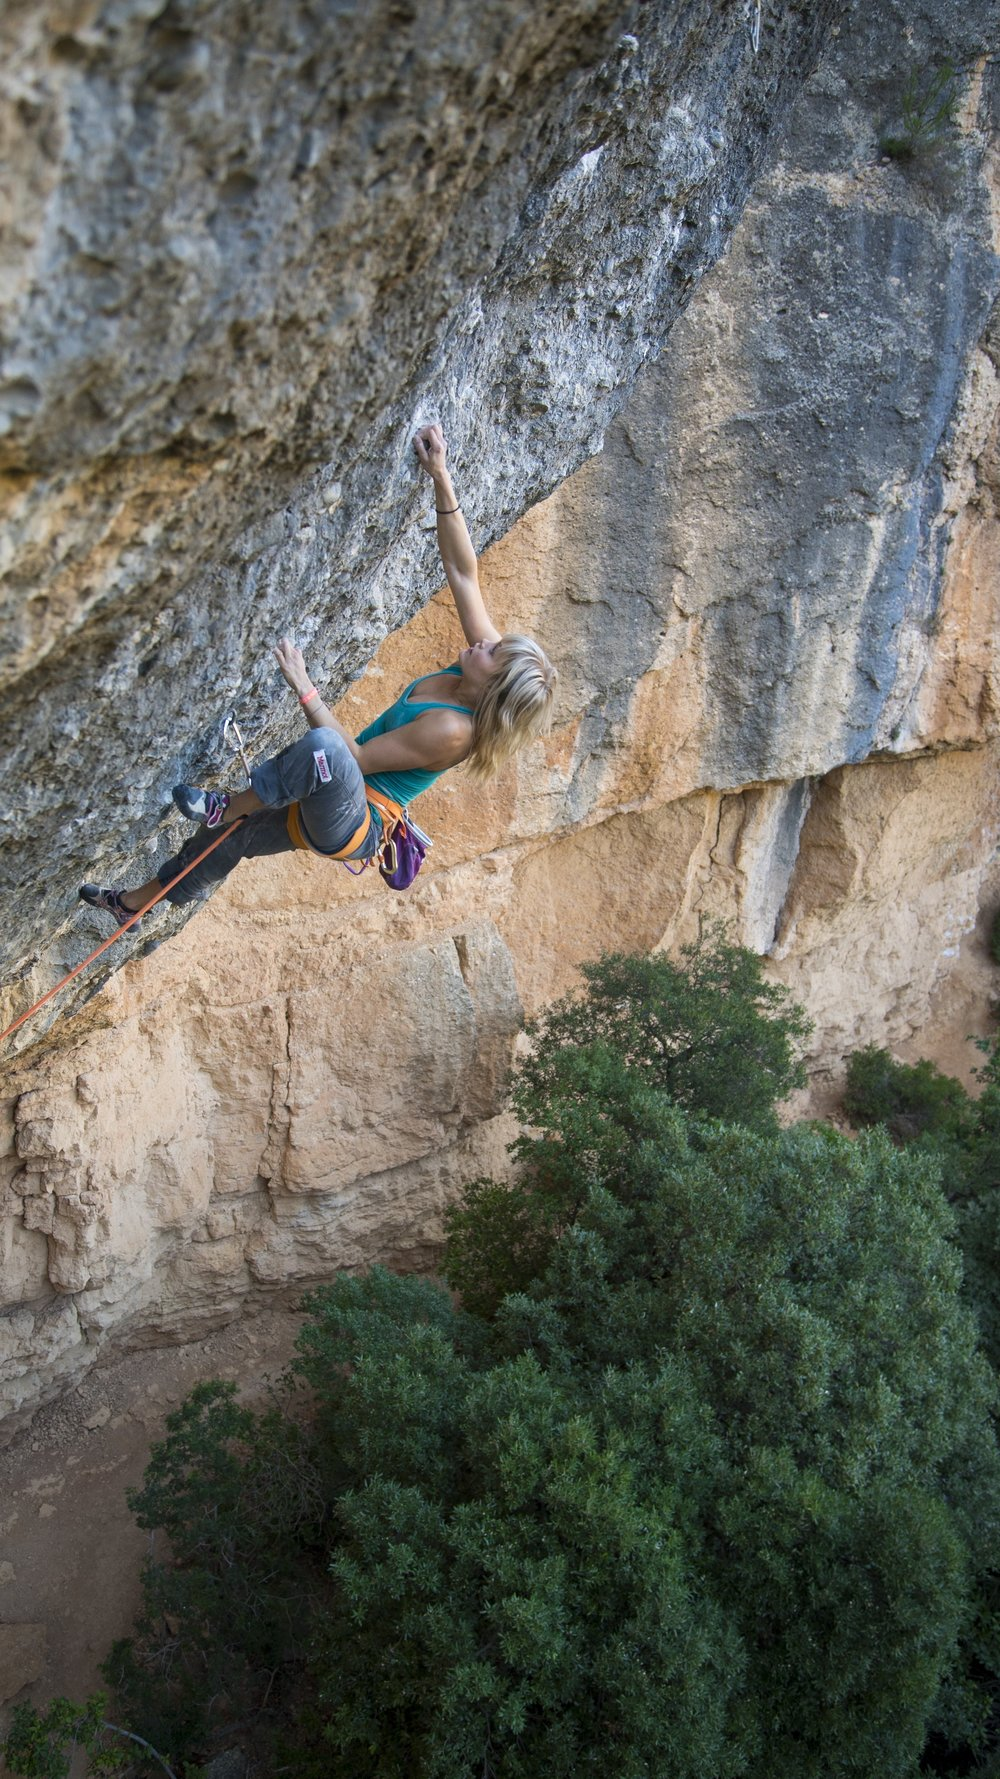 Via del Quim, 8b+, Margalef, Spain